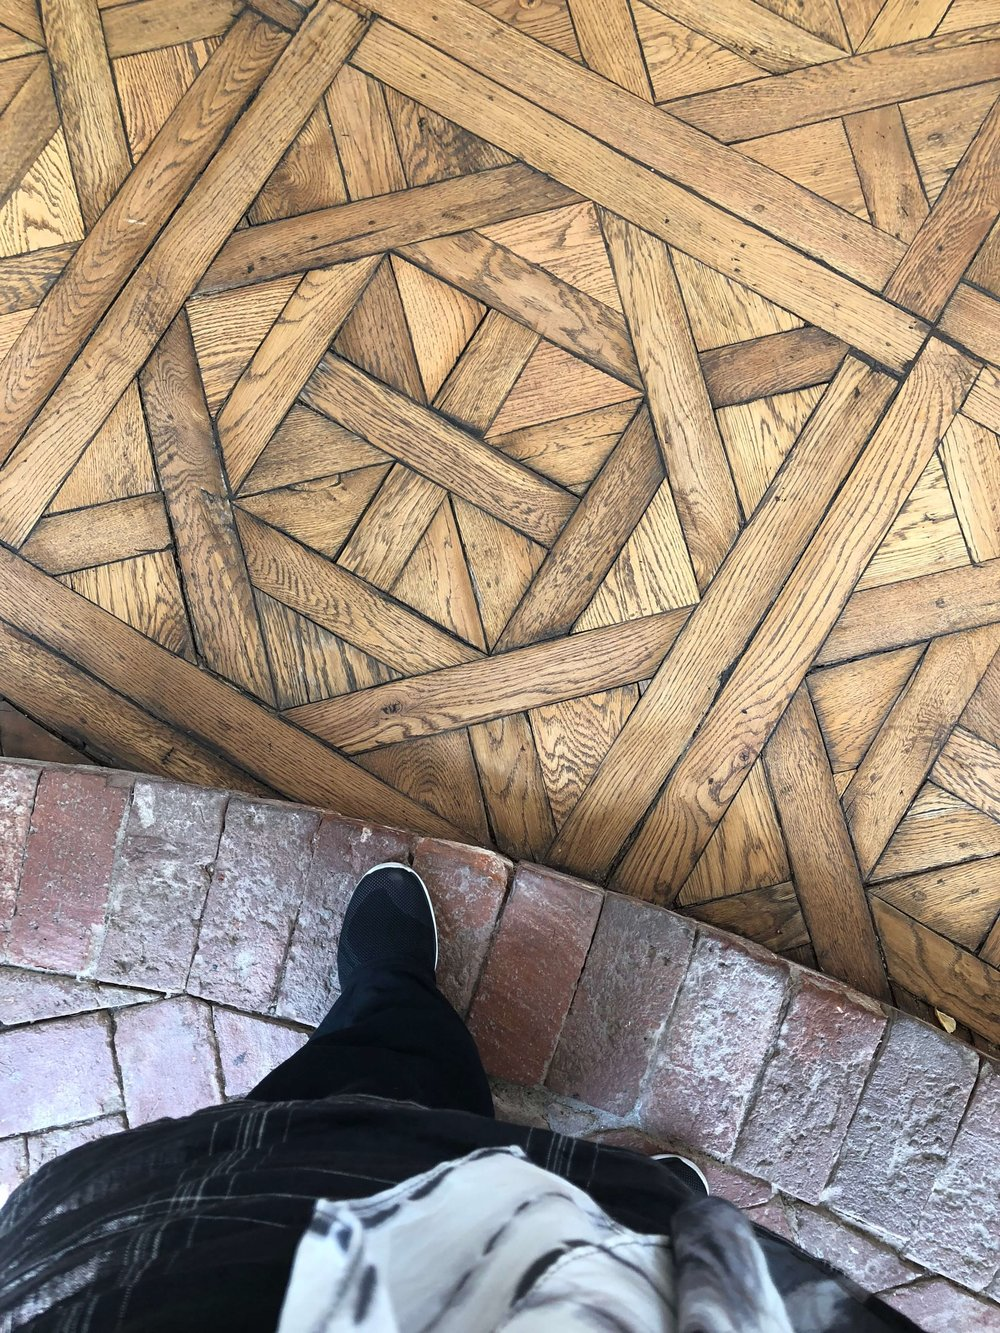 Parquet wood floors in halls at Casa Perfect, Beverly Hills, CA #parquet #woodflooring